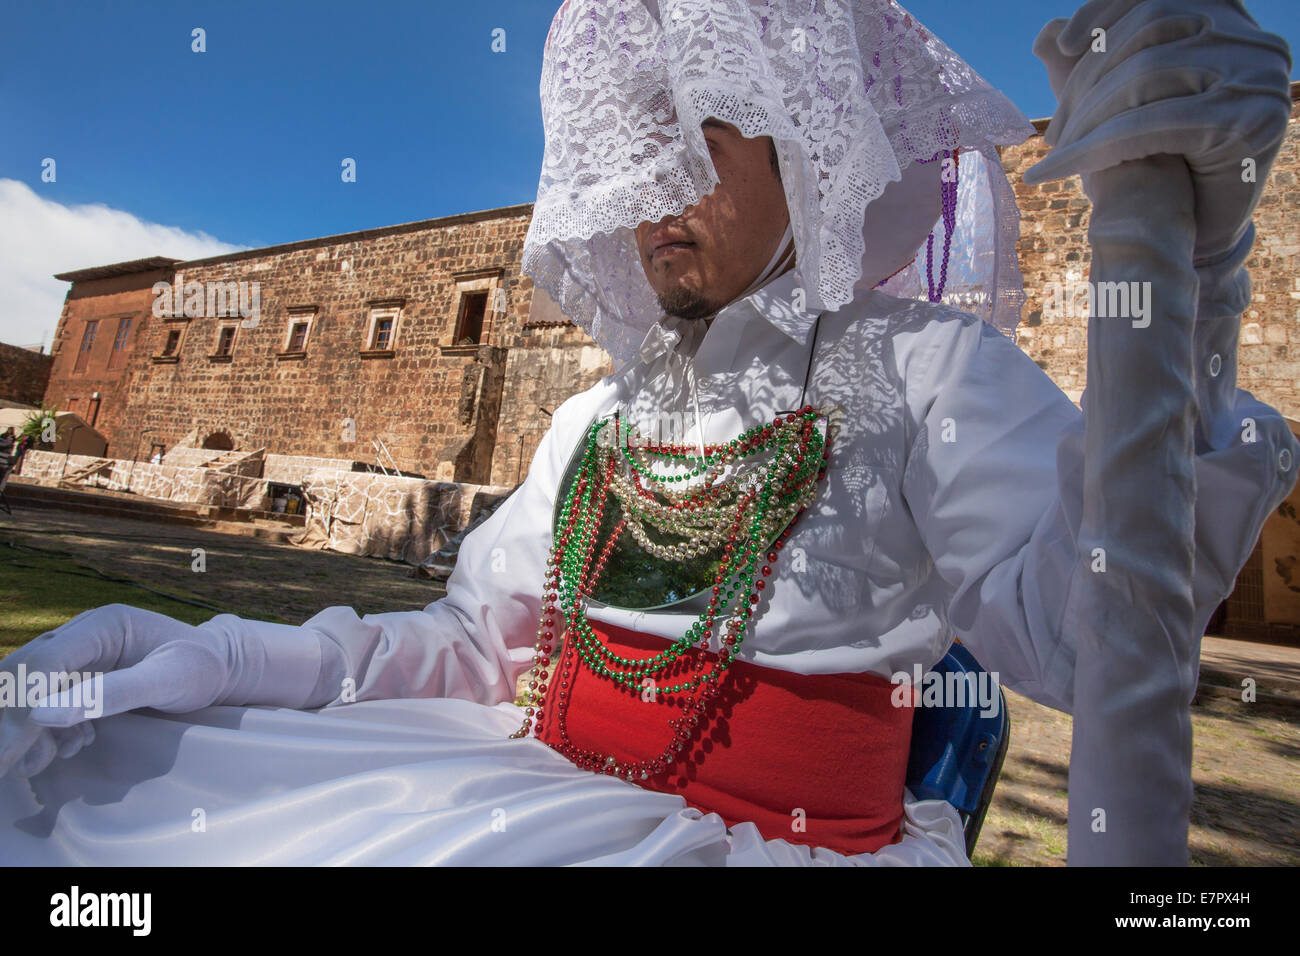 The character of the White Centurion during the Passion Play in Tzintzuntzan, Michoacan, Mexico. - Stock Image